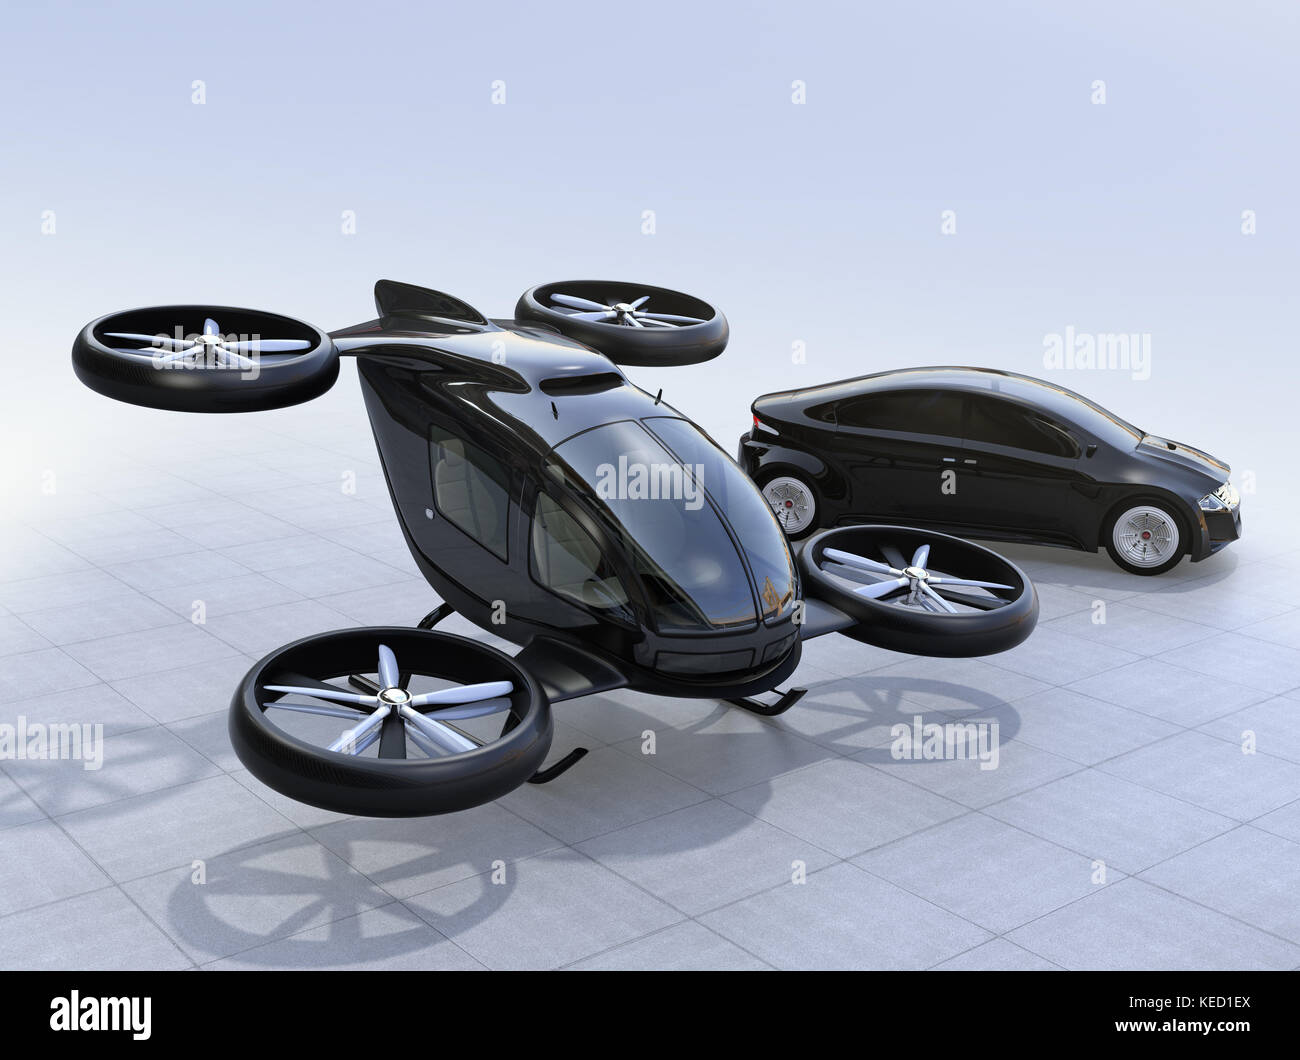 Self Driving Car And Passenger Drone Parking On The Ground 3D Rendering Image